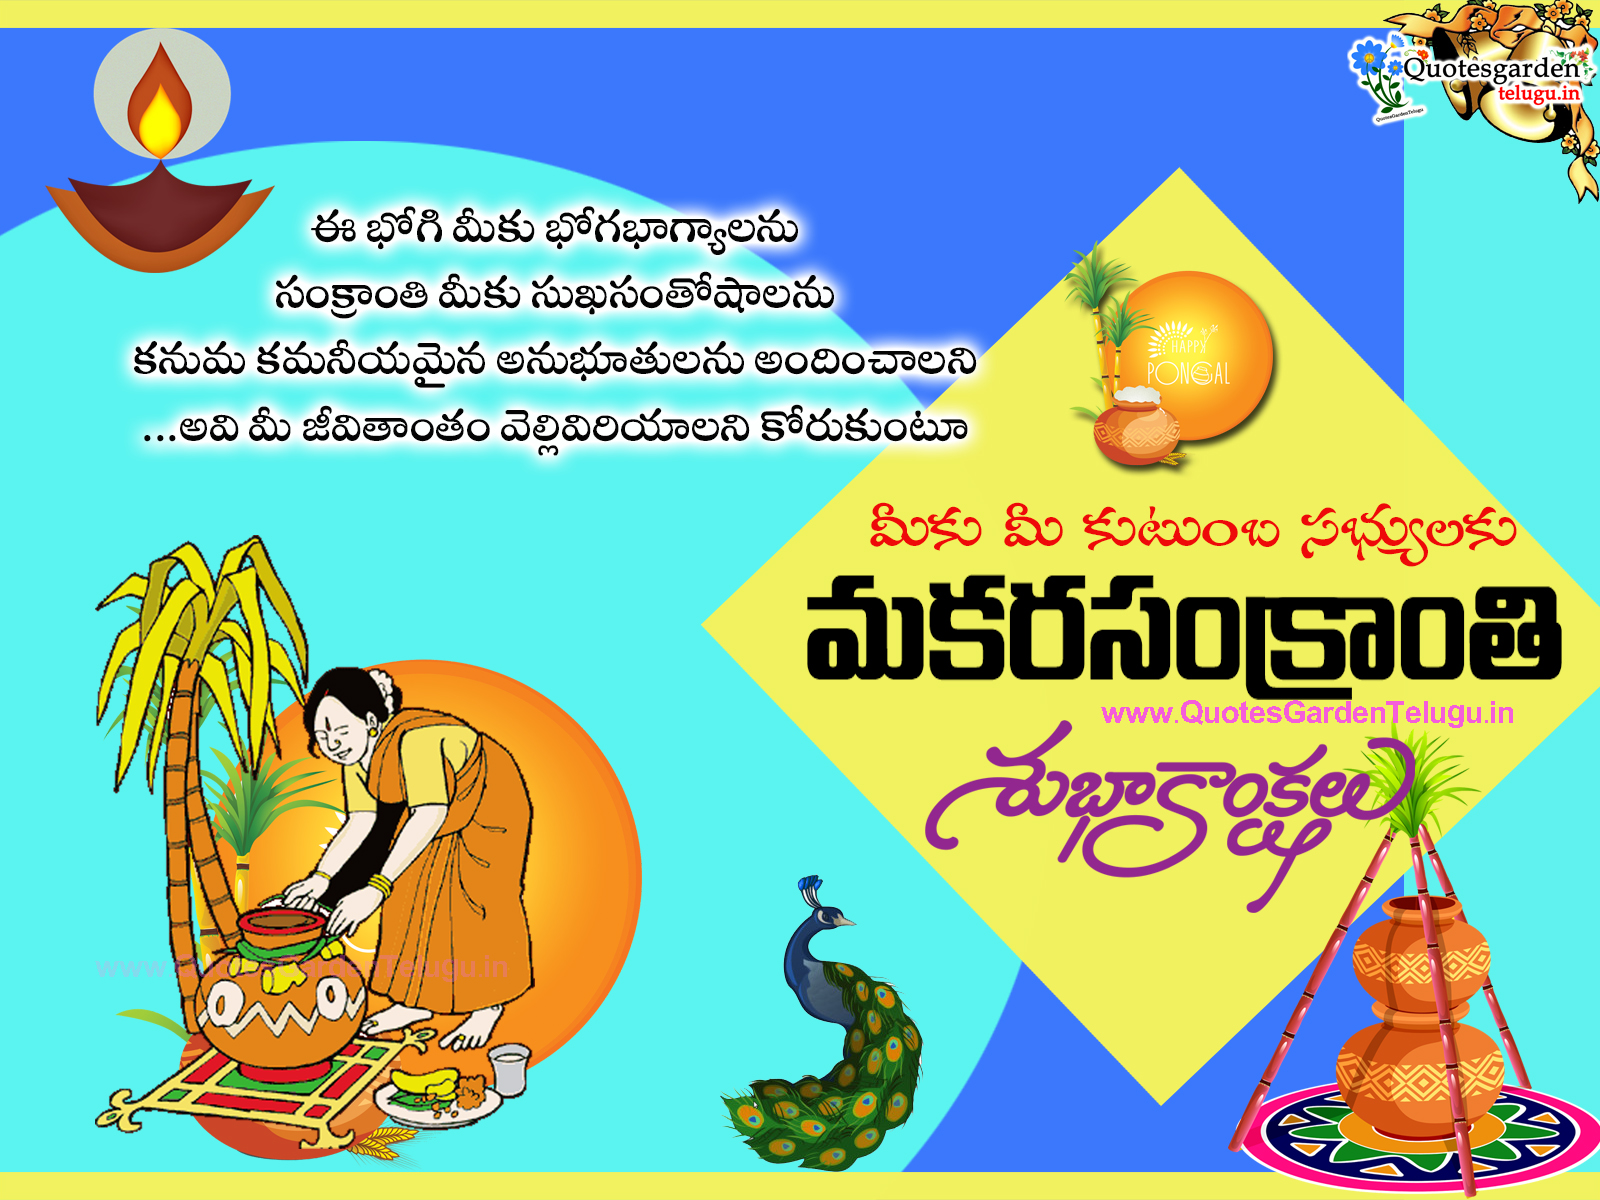 Happy Sankranthi 2019 greetings wishes images in telugu